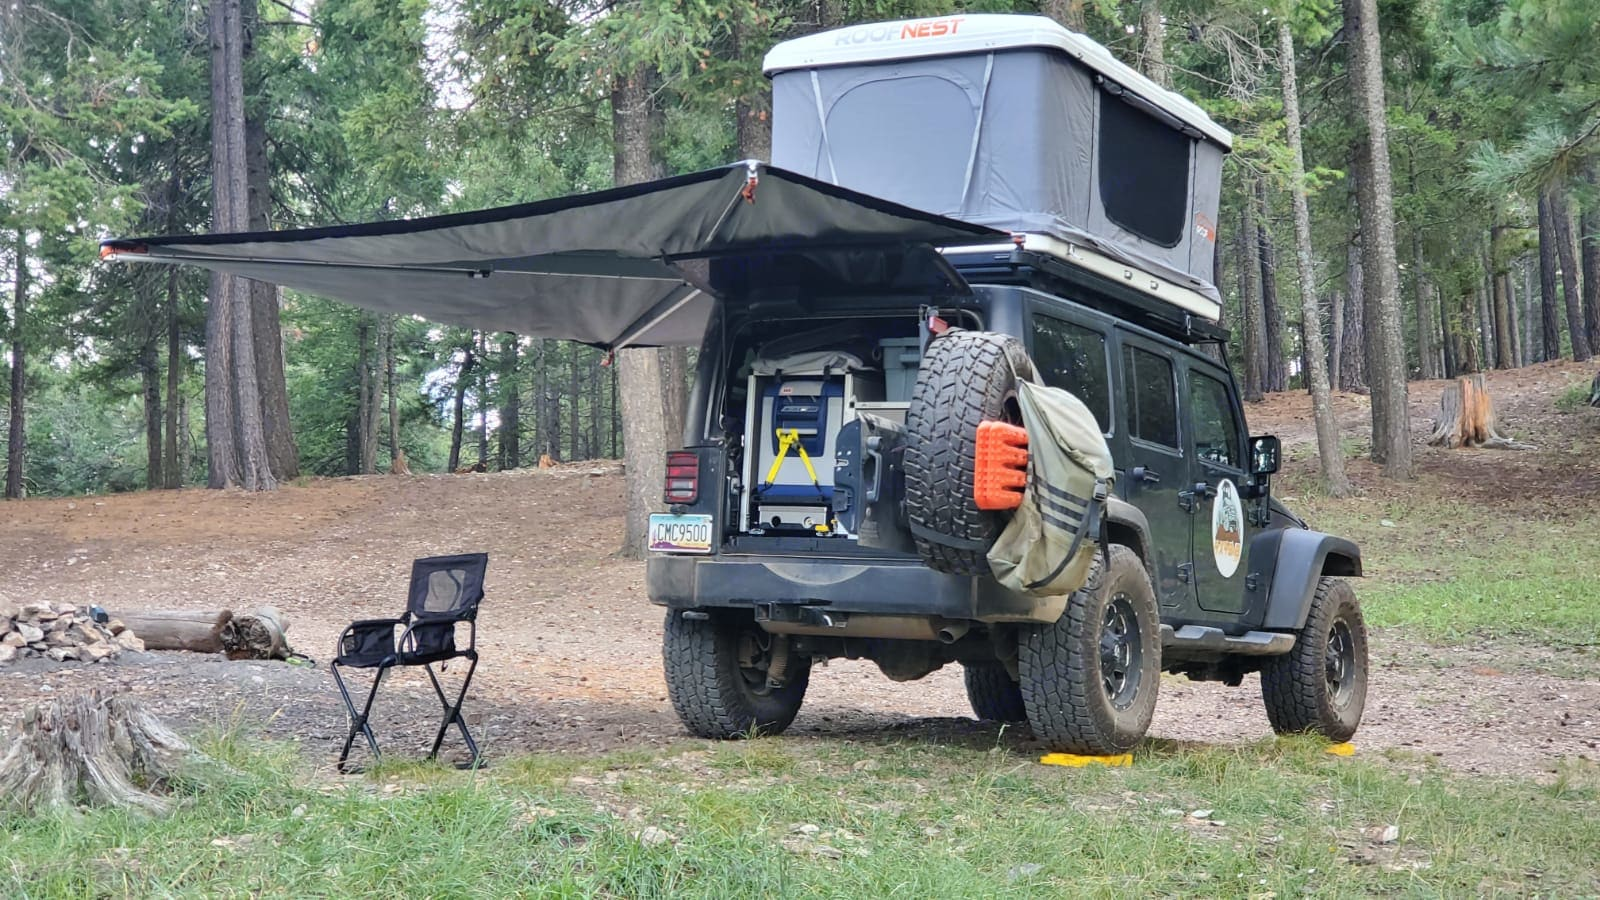 """Equipped with a roof top tent, awning, fridge, stove, cutting board, and cabinets- everything needed for a """"Bed and Breakfast""""!. Jeep Wrangler Unlimited 2016"""